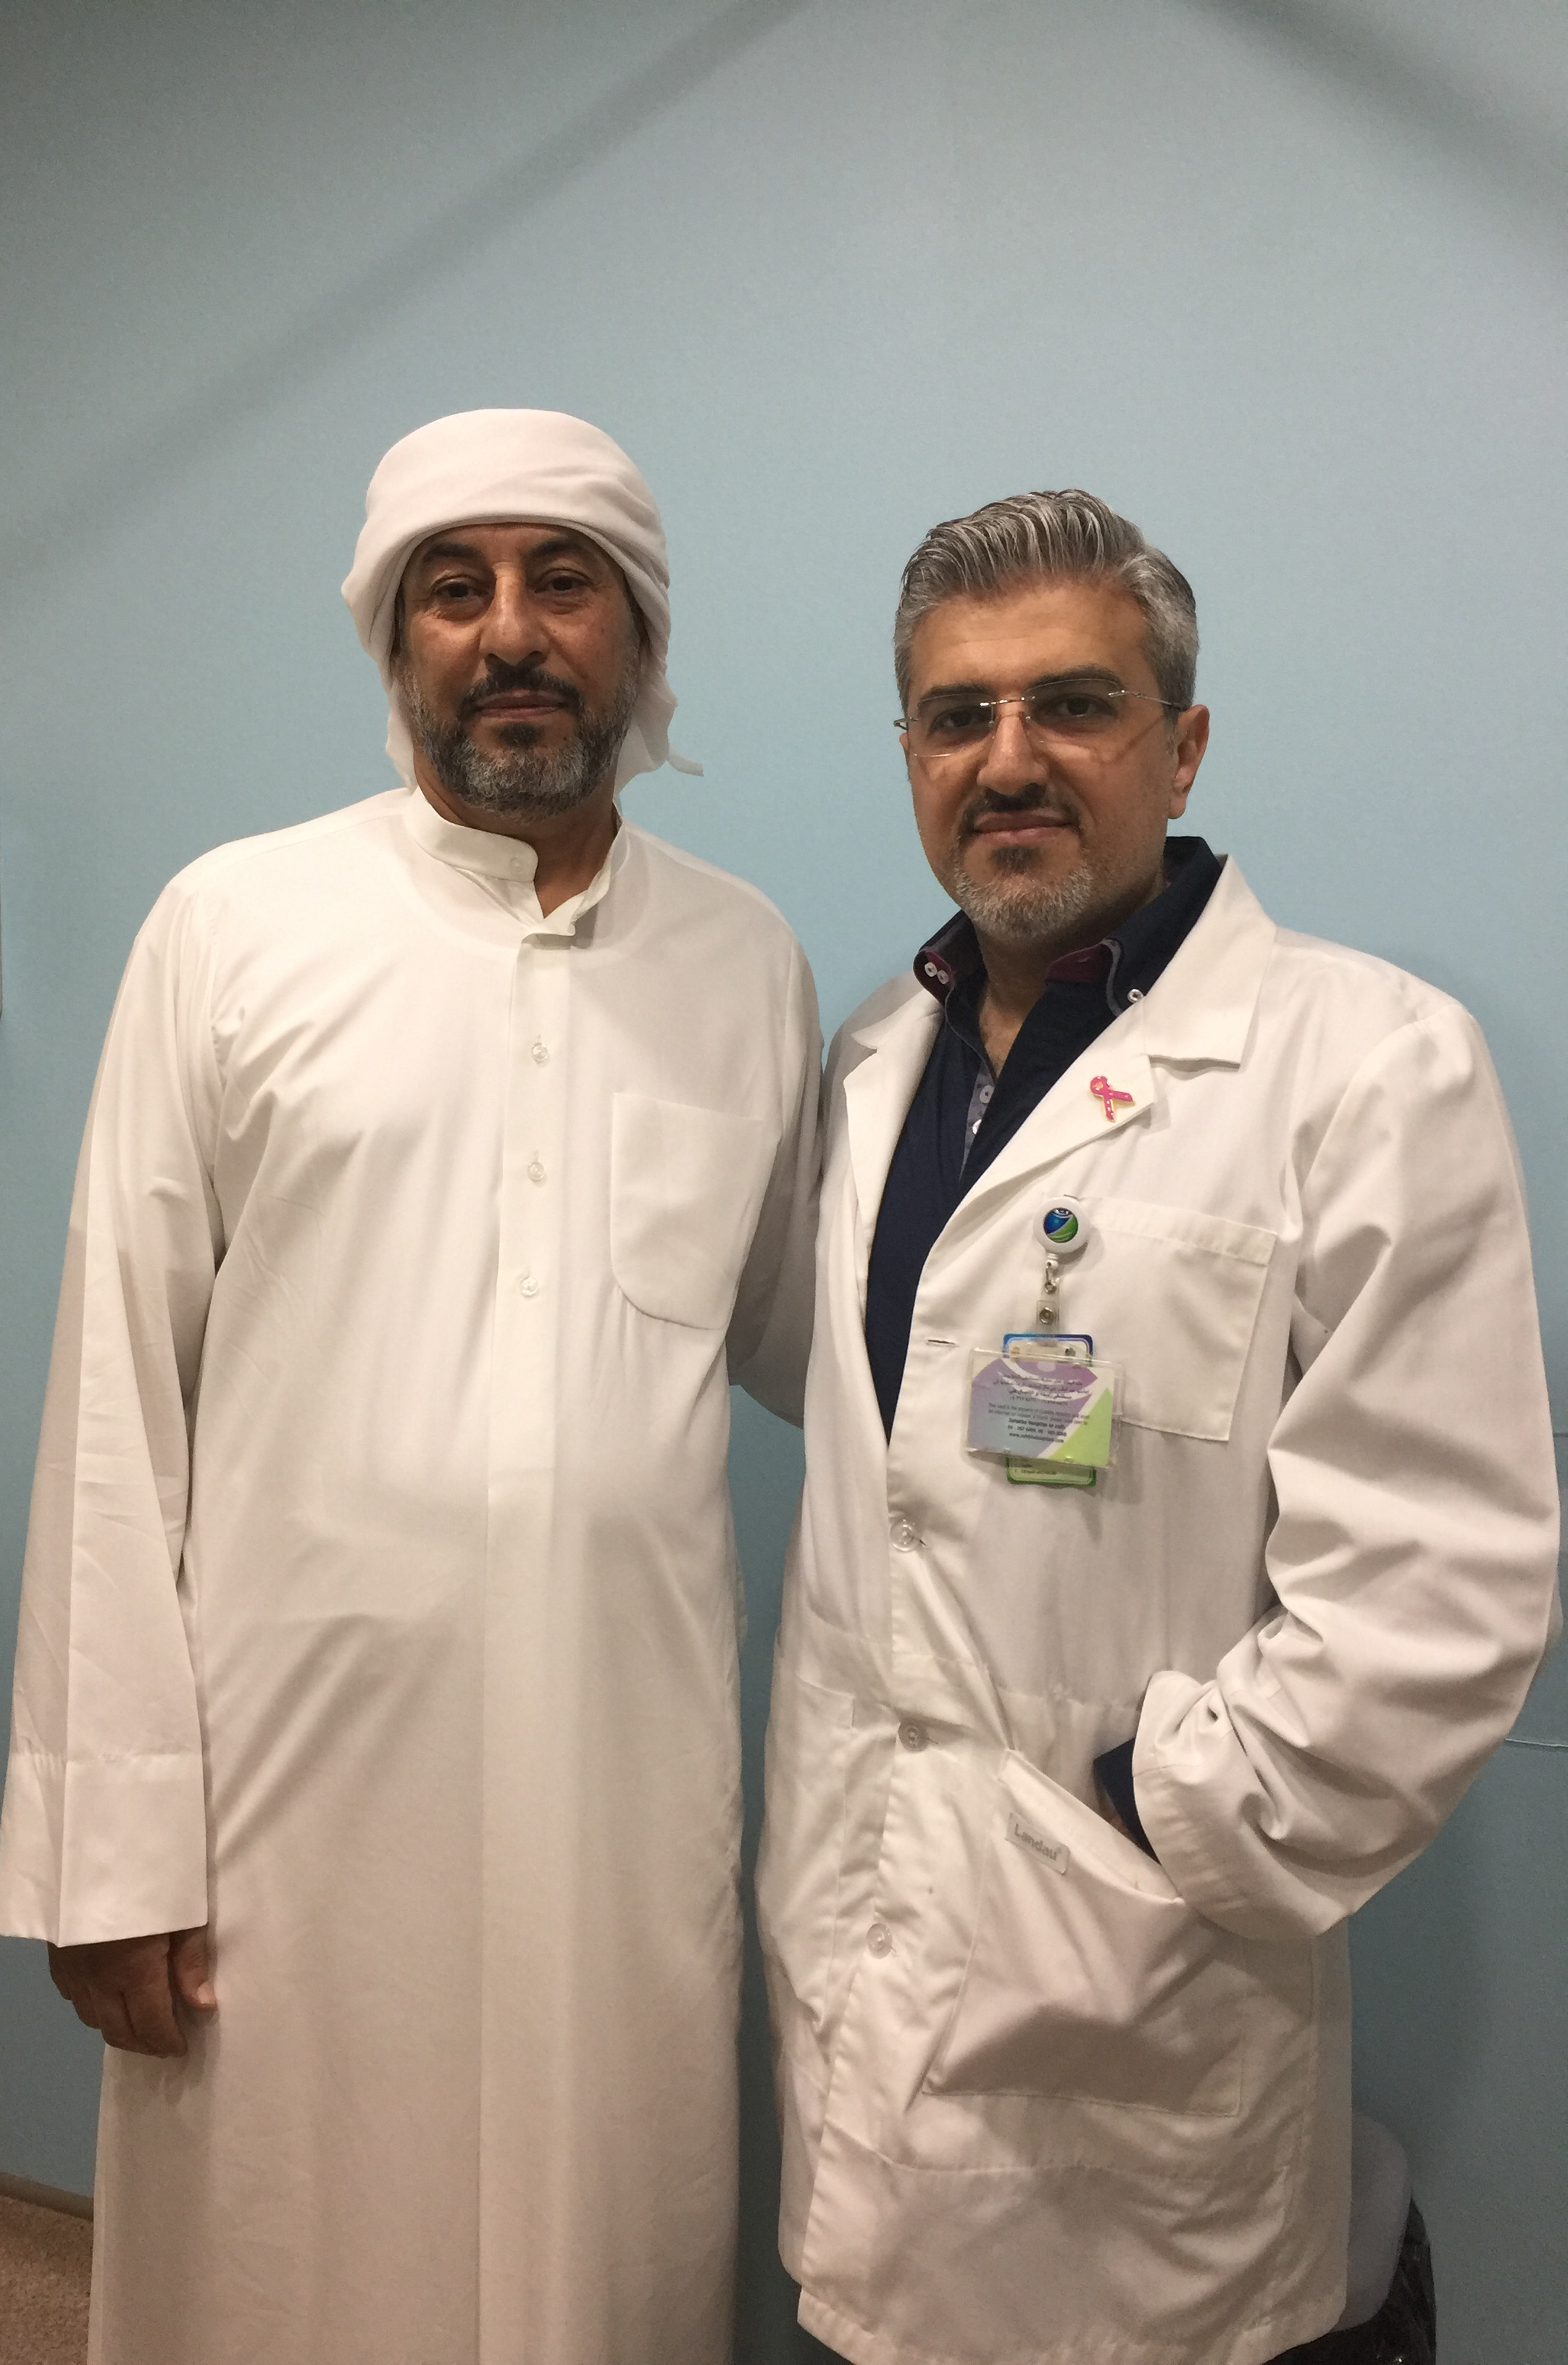 Zulekha Hospital Sharjah's Surgeons Treat Huge 38 centimetre Benign Tumor to Normalize Life of Patient